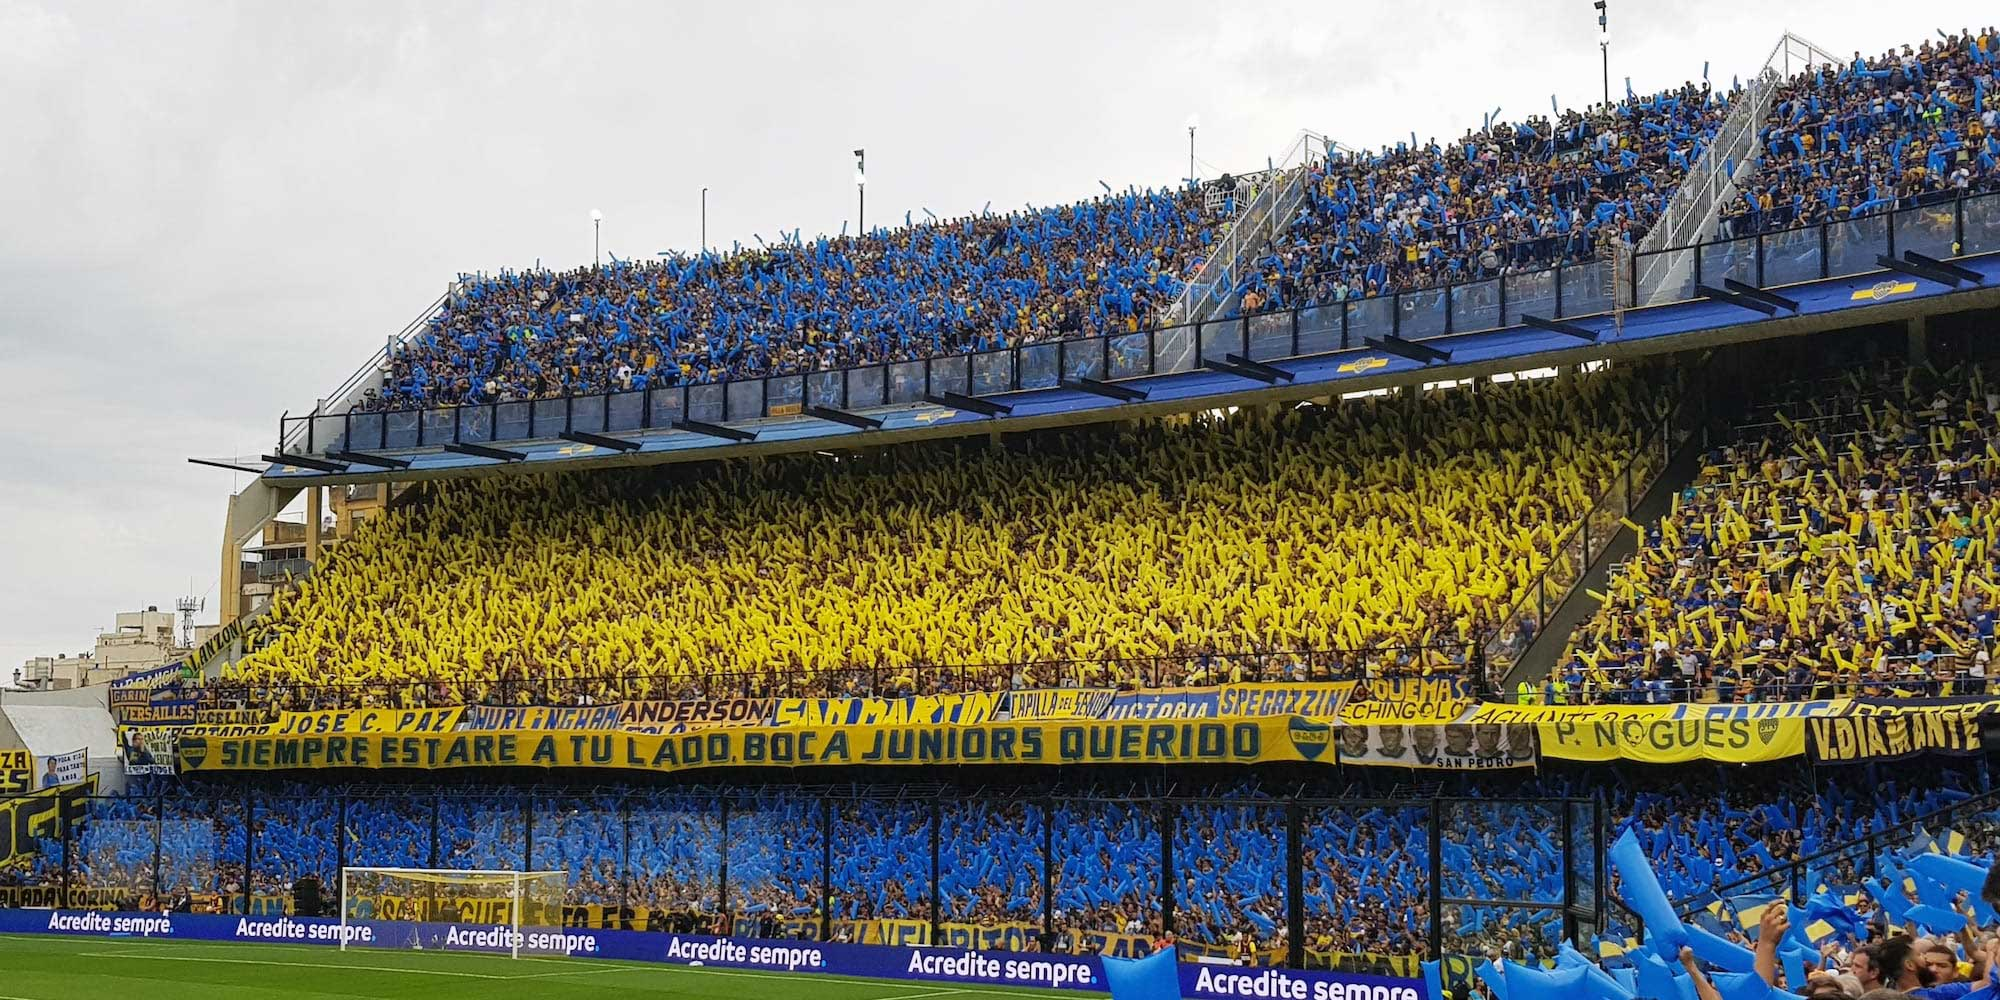 Boca Juniors Stadium La Boca